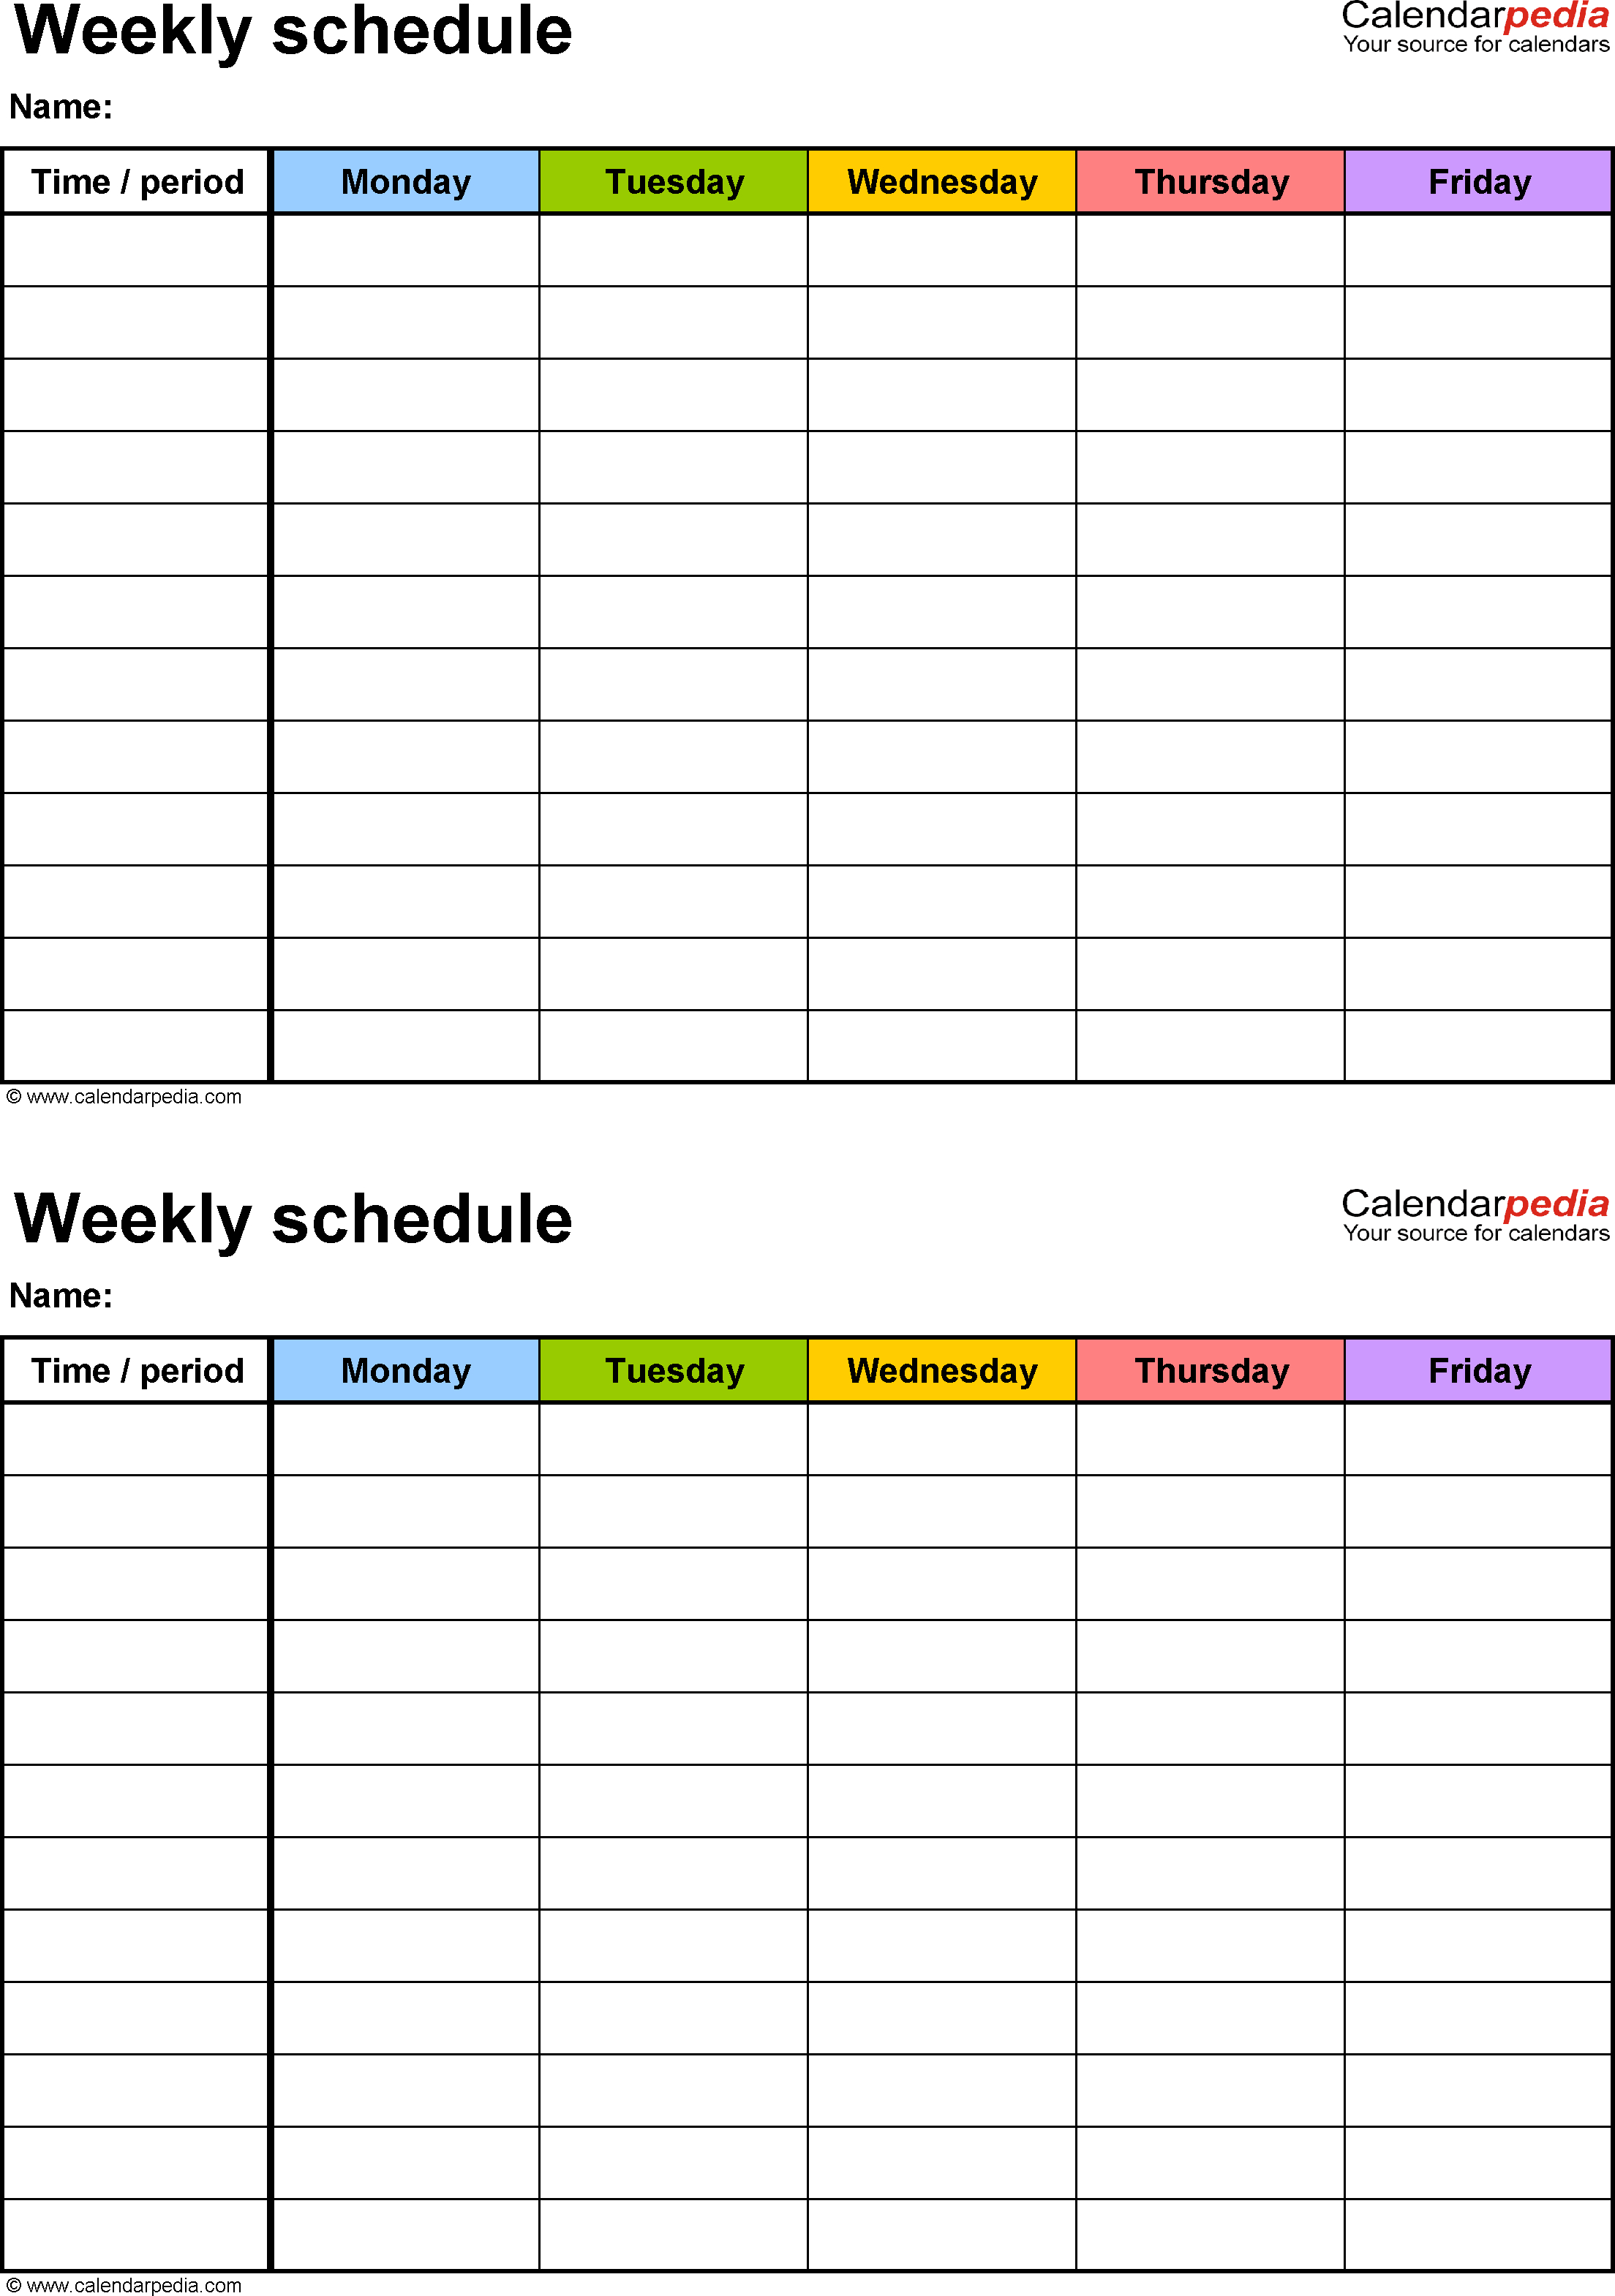 Free Weekly Schedule Templates For Pdf - 18 Templates throughout Weekly Calendar Template With Minute Time Slots